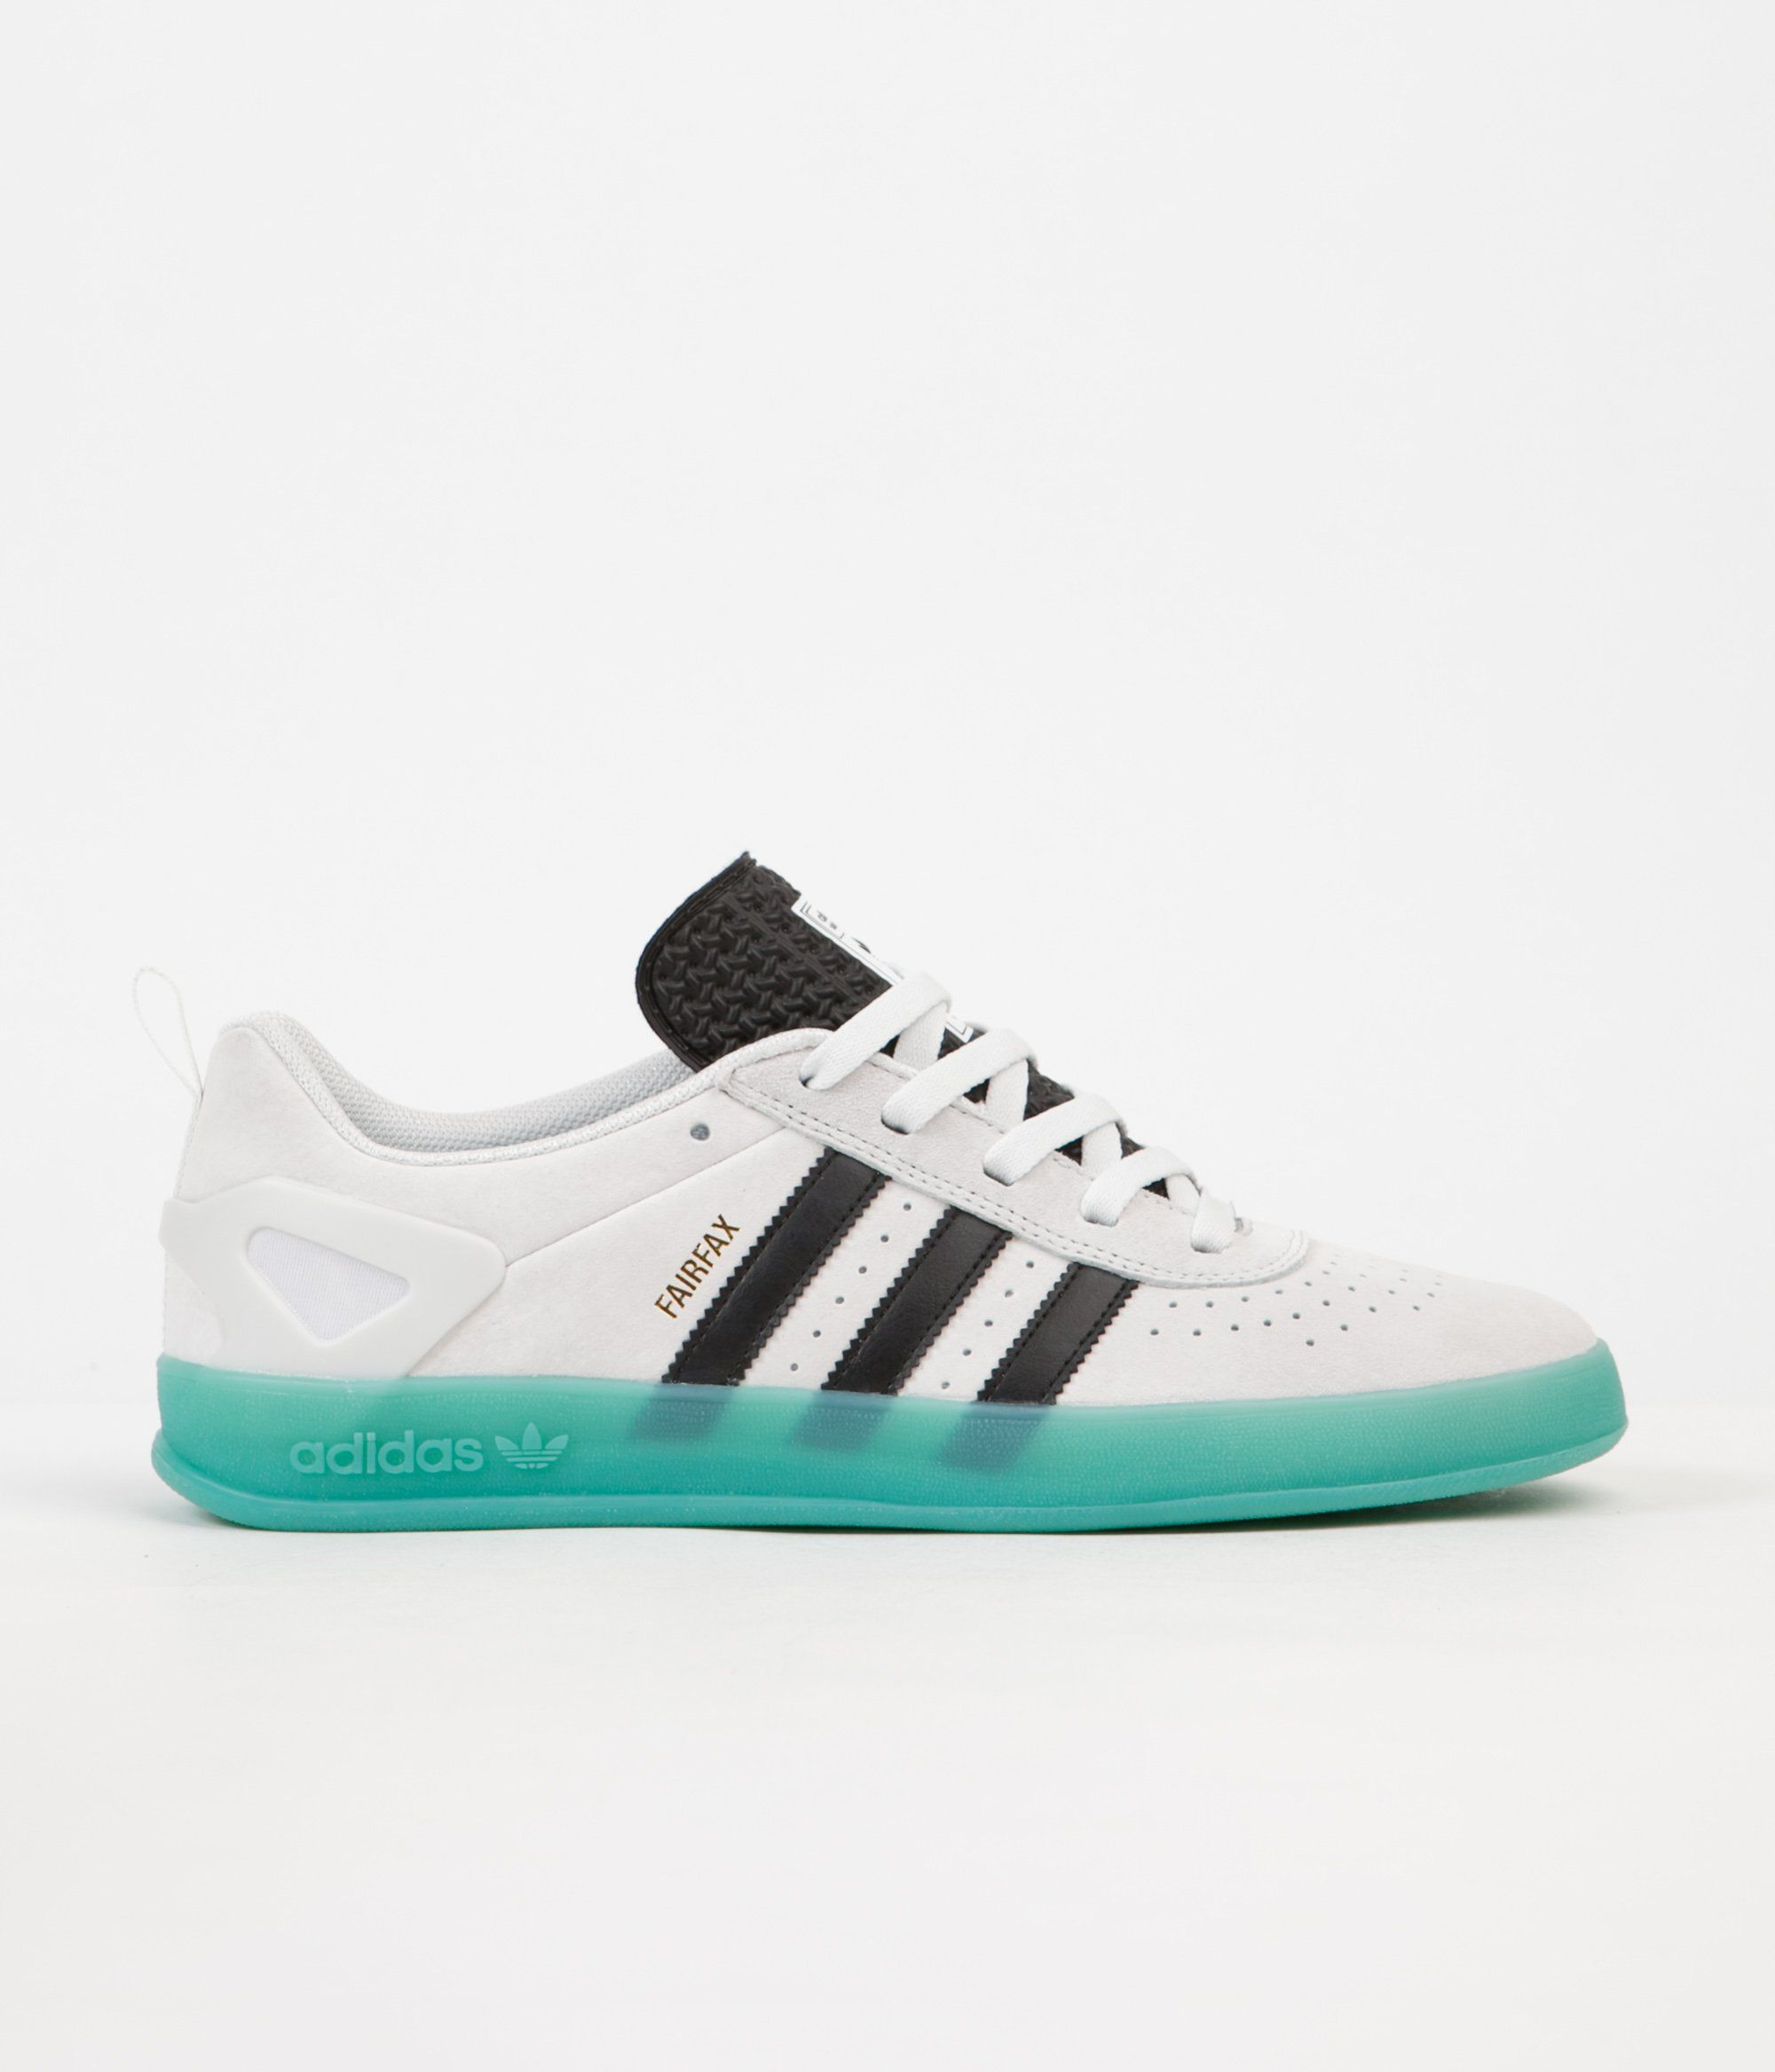 Adidas x Palace Pro 'Benny' Shoes - White / Black / Gold